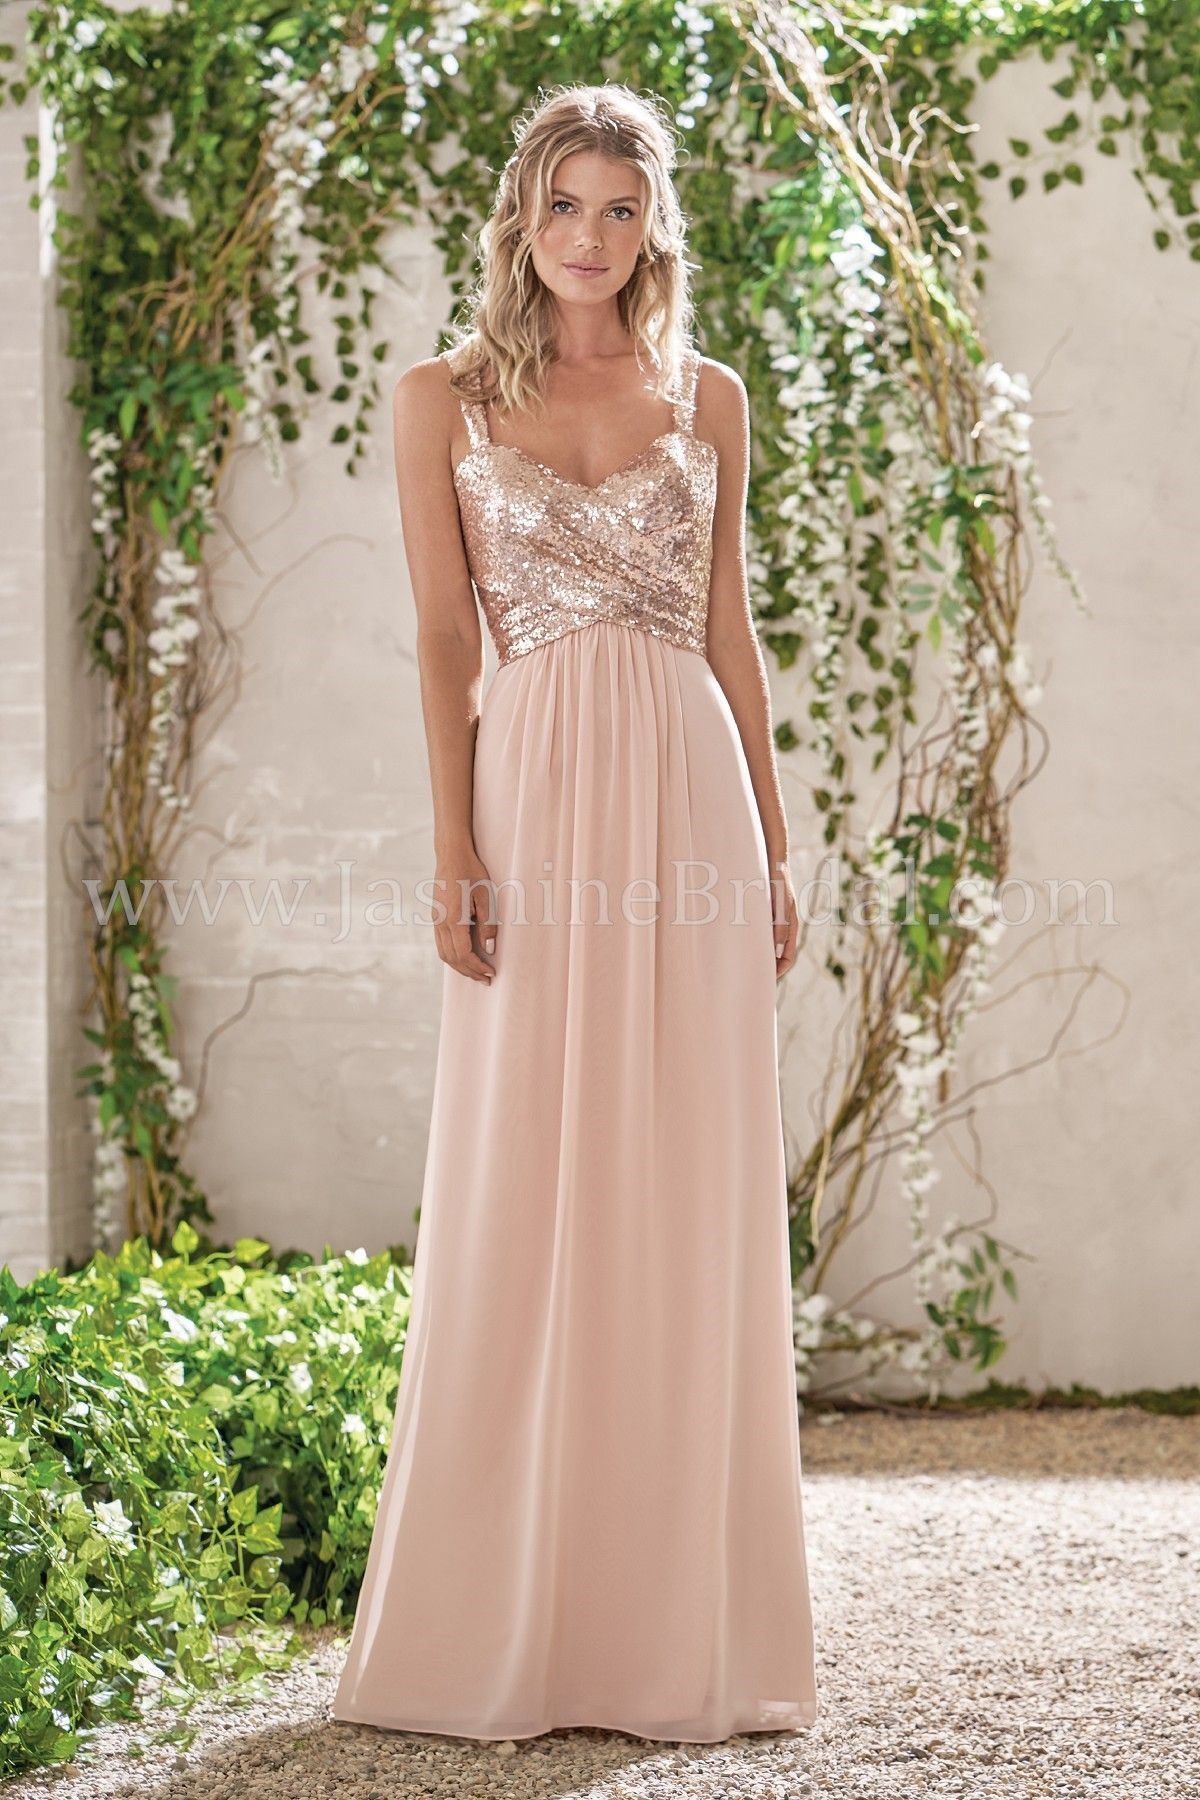 Jasmine bridal b2 style b193005 in sequin iipoly chiffon color have your bridesmaids shine in style available at jasmine galleria ombrellifo Choice Image